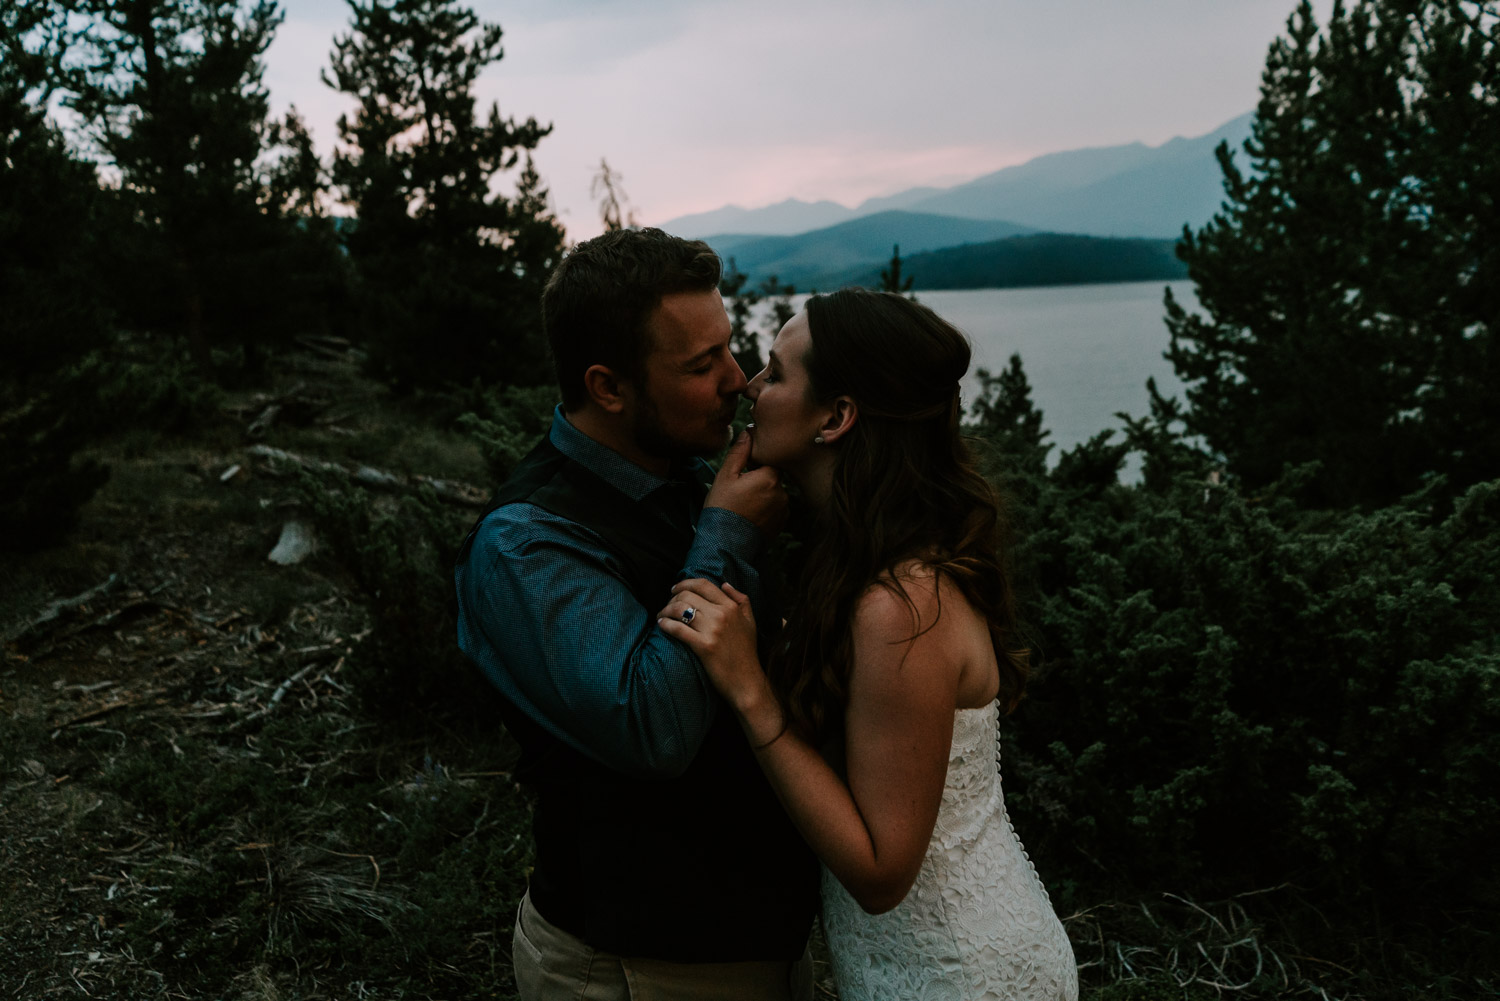 Beth_Jeff_Colorado_Wedding_MegONeillPhotography__180721_138